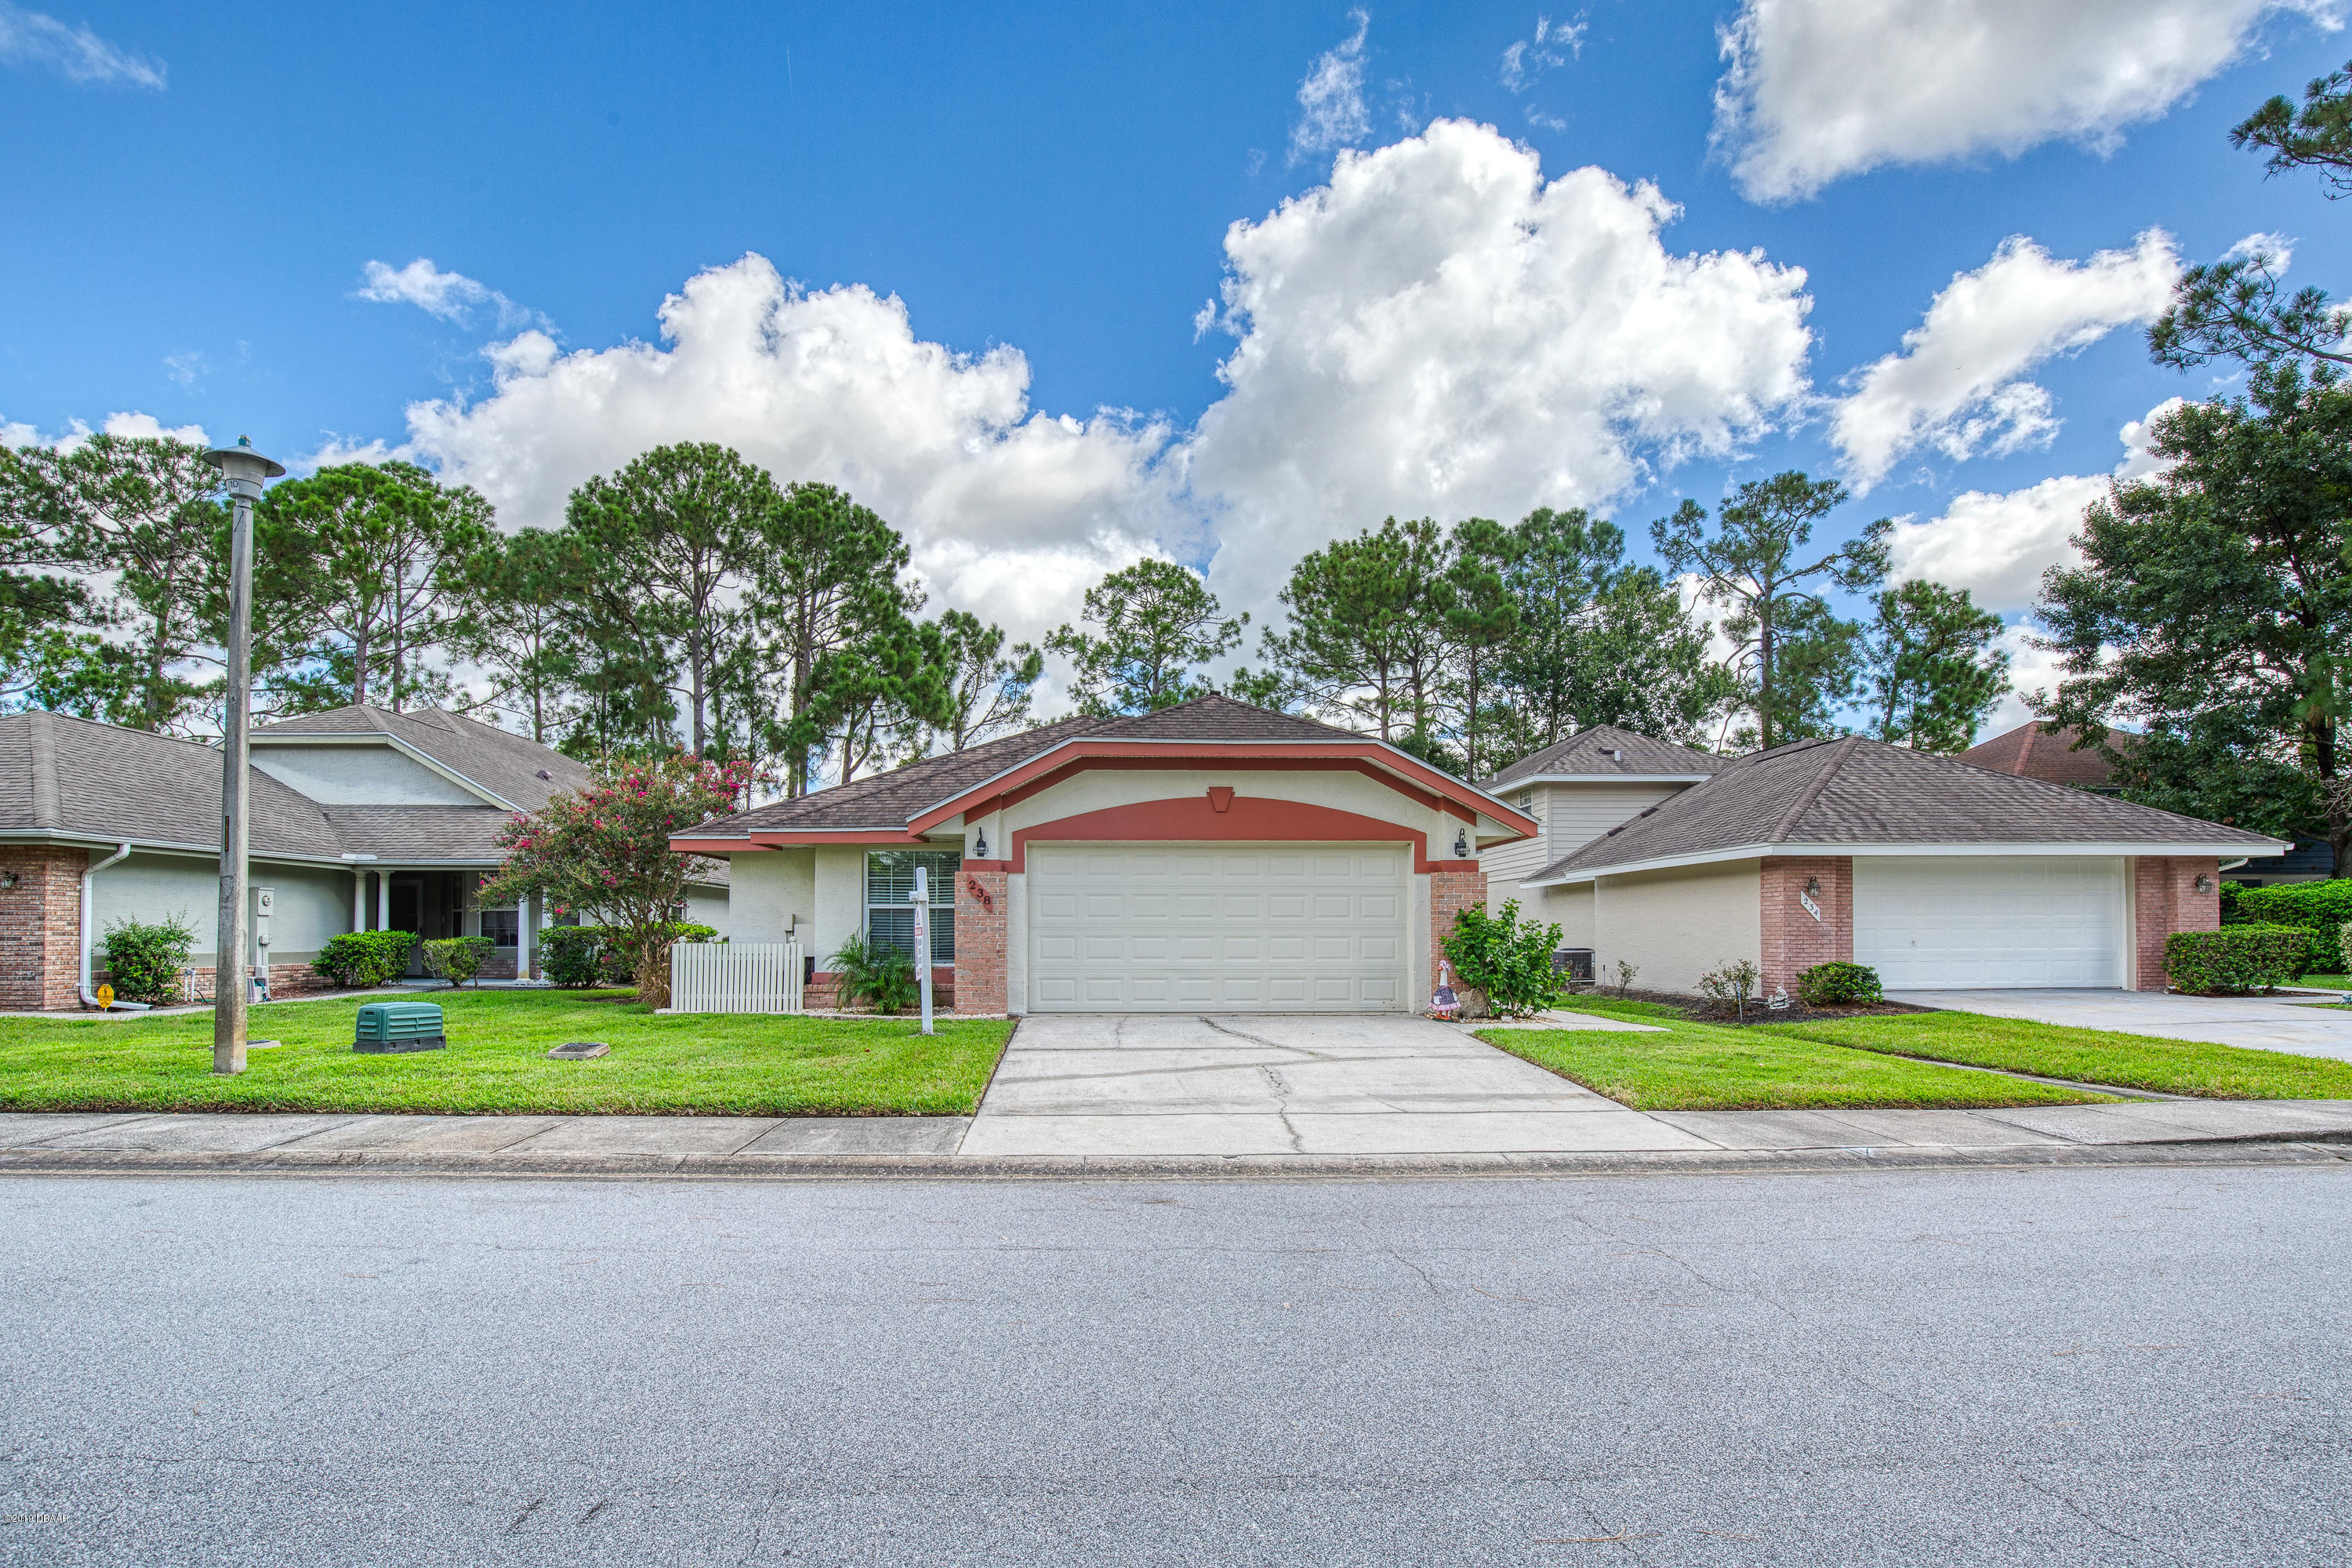 Photo of 238 Braeburn Circle, Daytona Beach, FL 32114